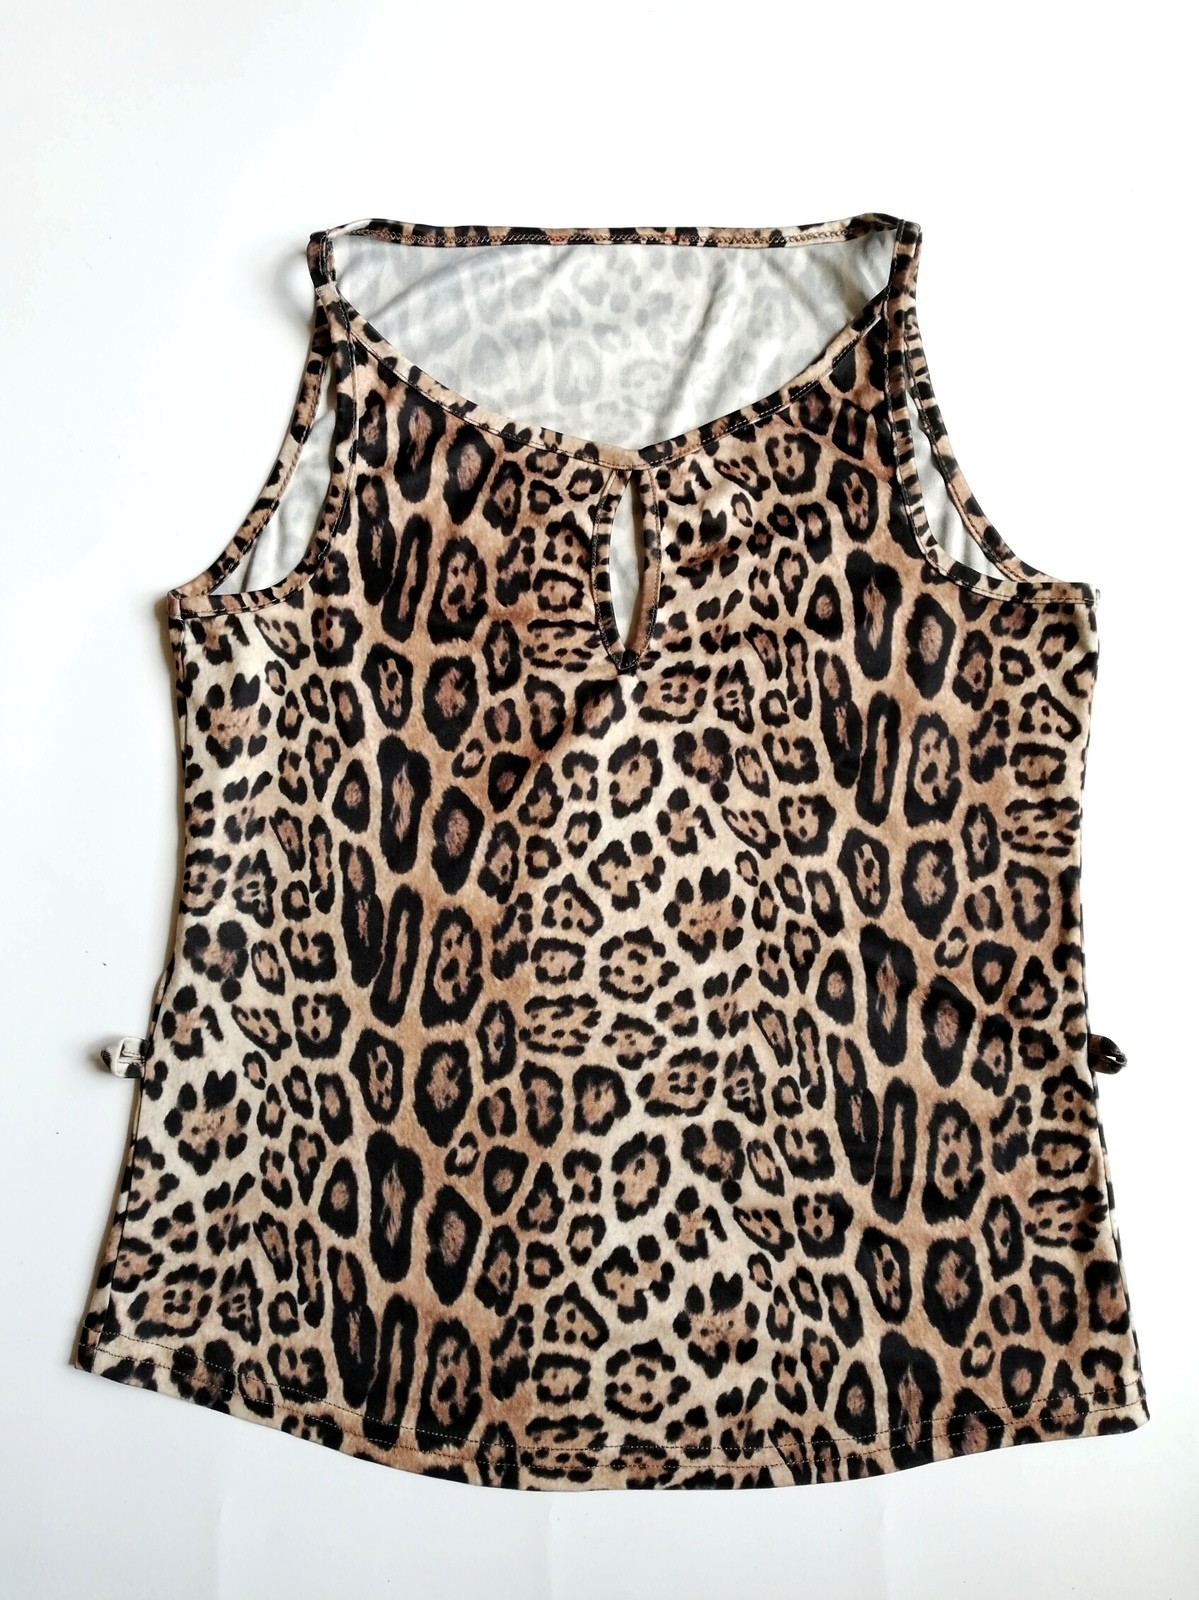 Luipaard Print Interieur Leopard Print Top Patterned Top By Africangrungy Tanks Afrikrea